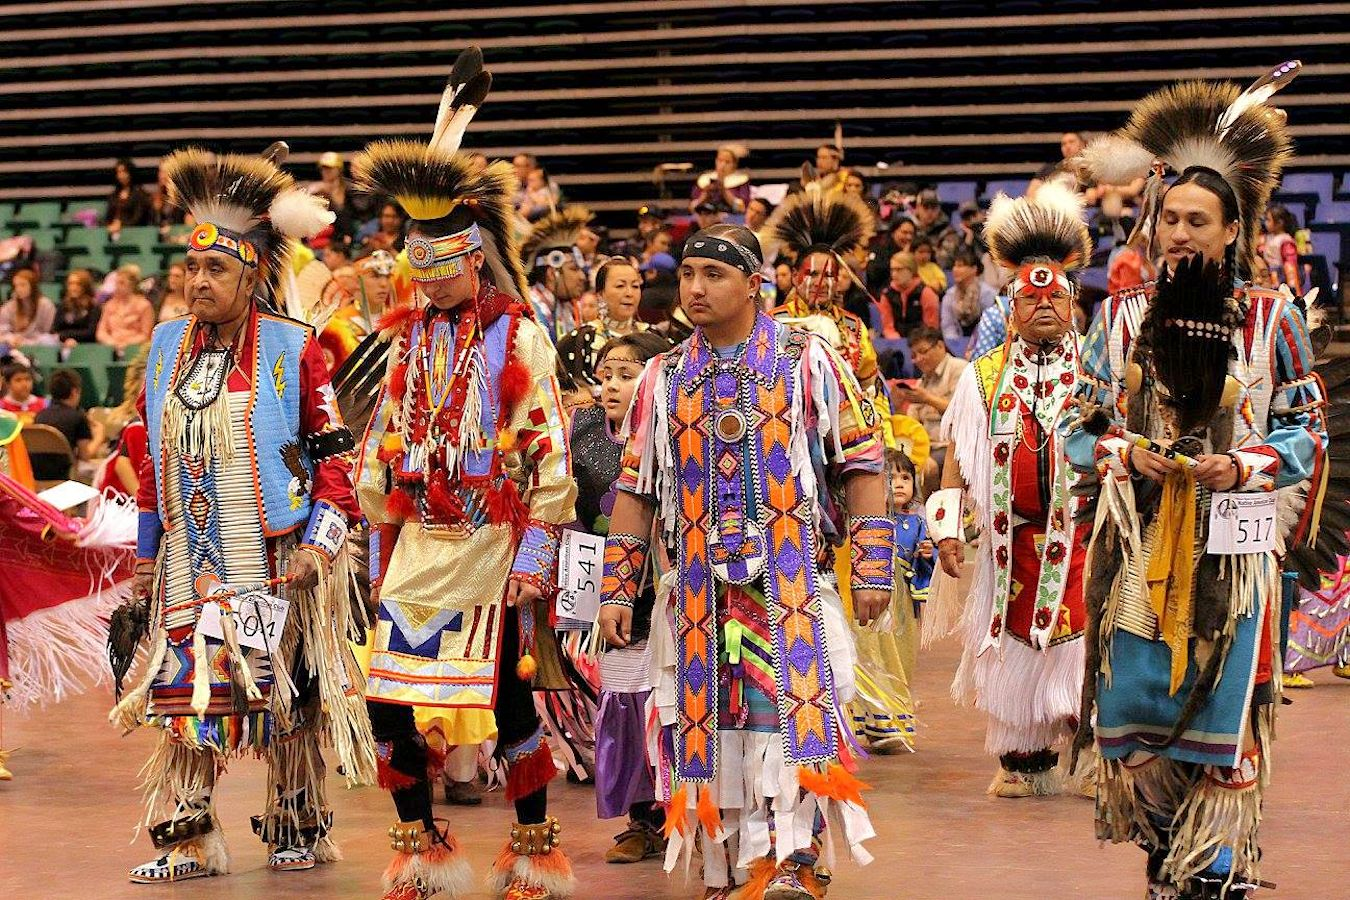 Minot State University Spring Powwow and Honor Dance Celebration